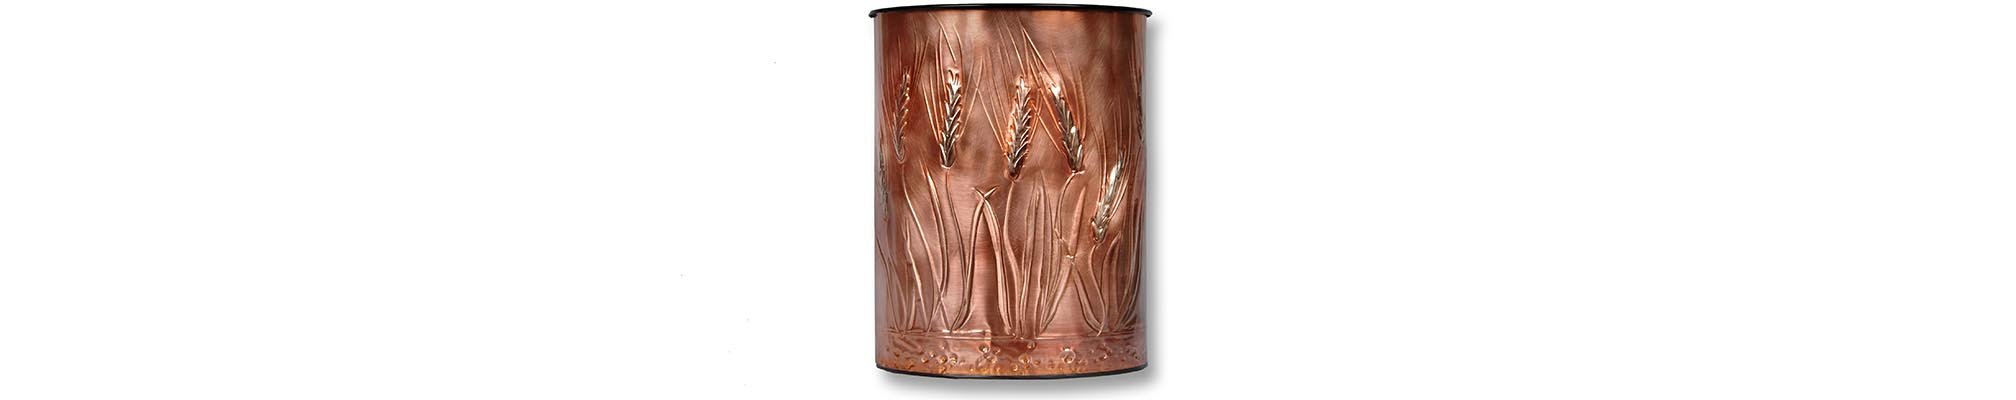 Hentzi Copper Designs